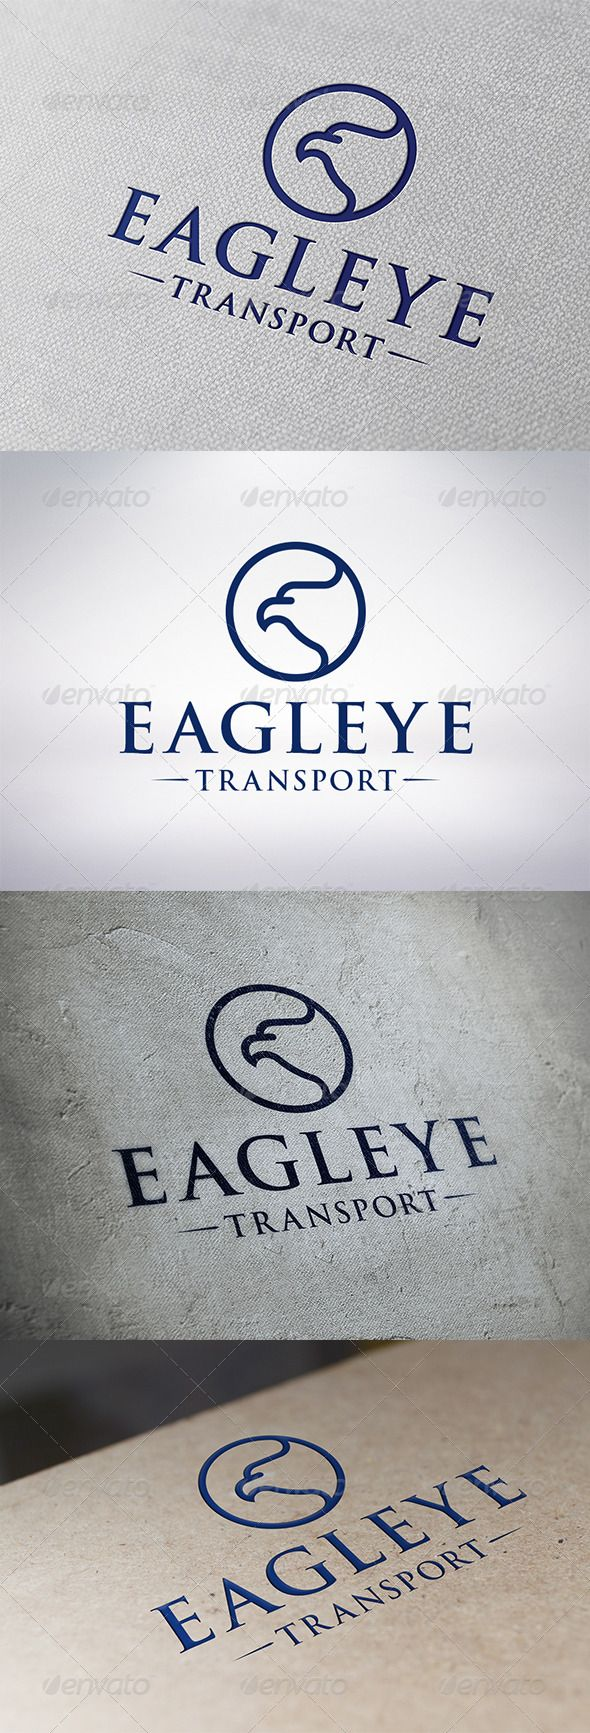 Eagle Logo Template — Vector EPS #airplane app #flight offers • Available here → https://graphicriver.net/item/eagle-logo-template/6309009?ref=pxcr